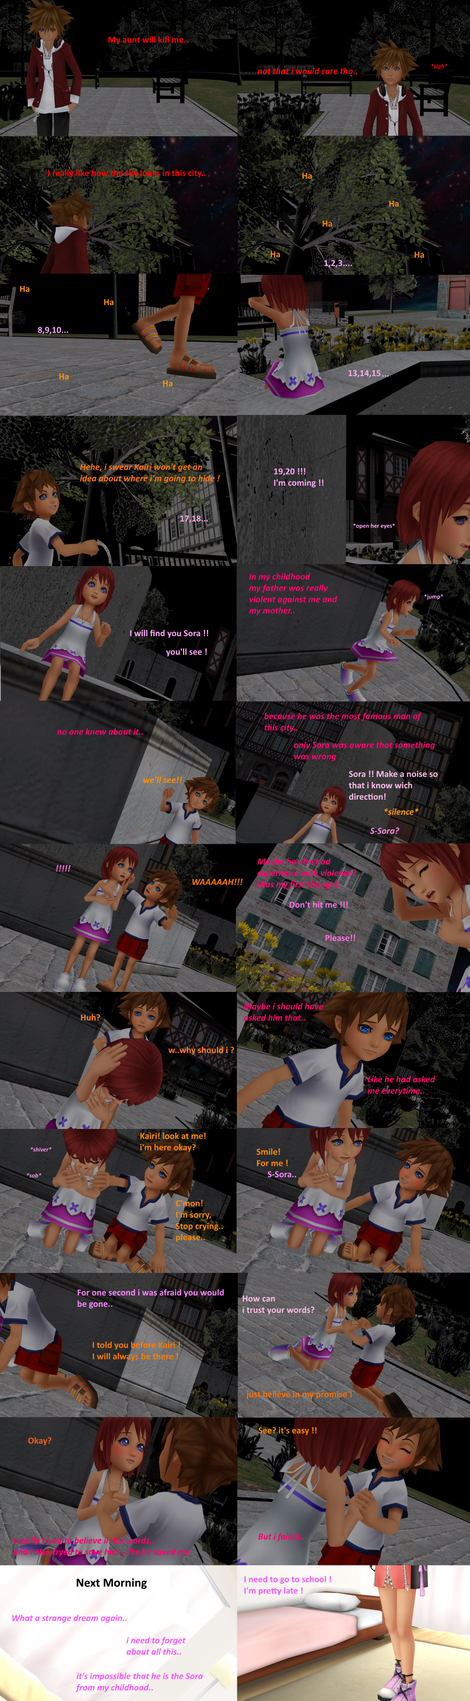 [MMD COMIC] The day we've met [ Part 21] by MischiiOtaku